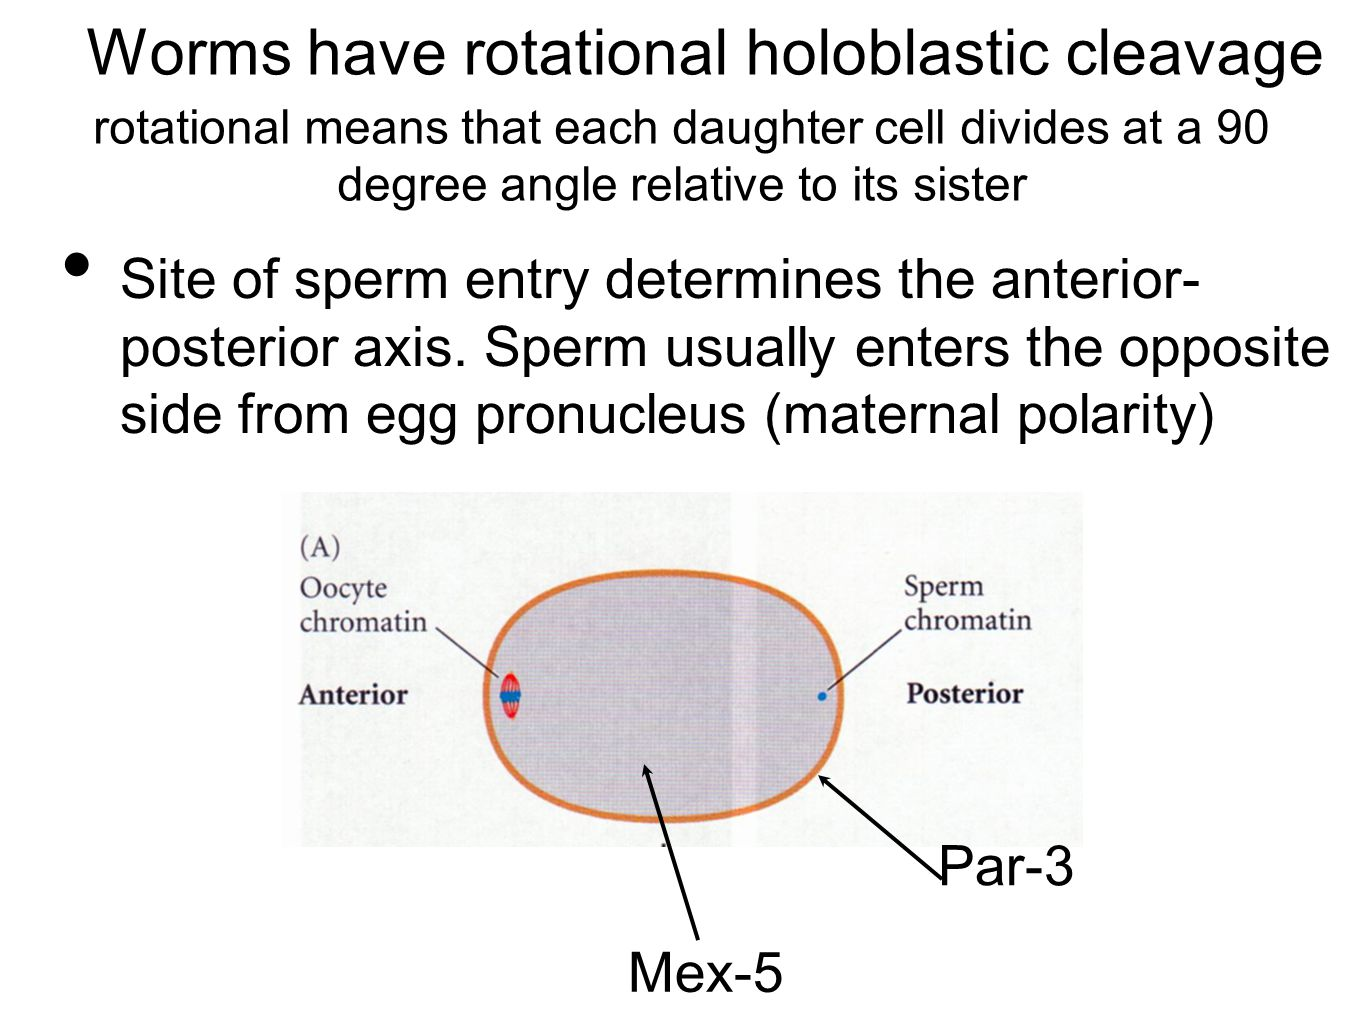 Worms have rotational holoblastic cleavage